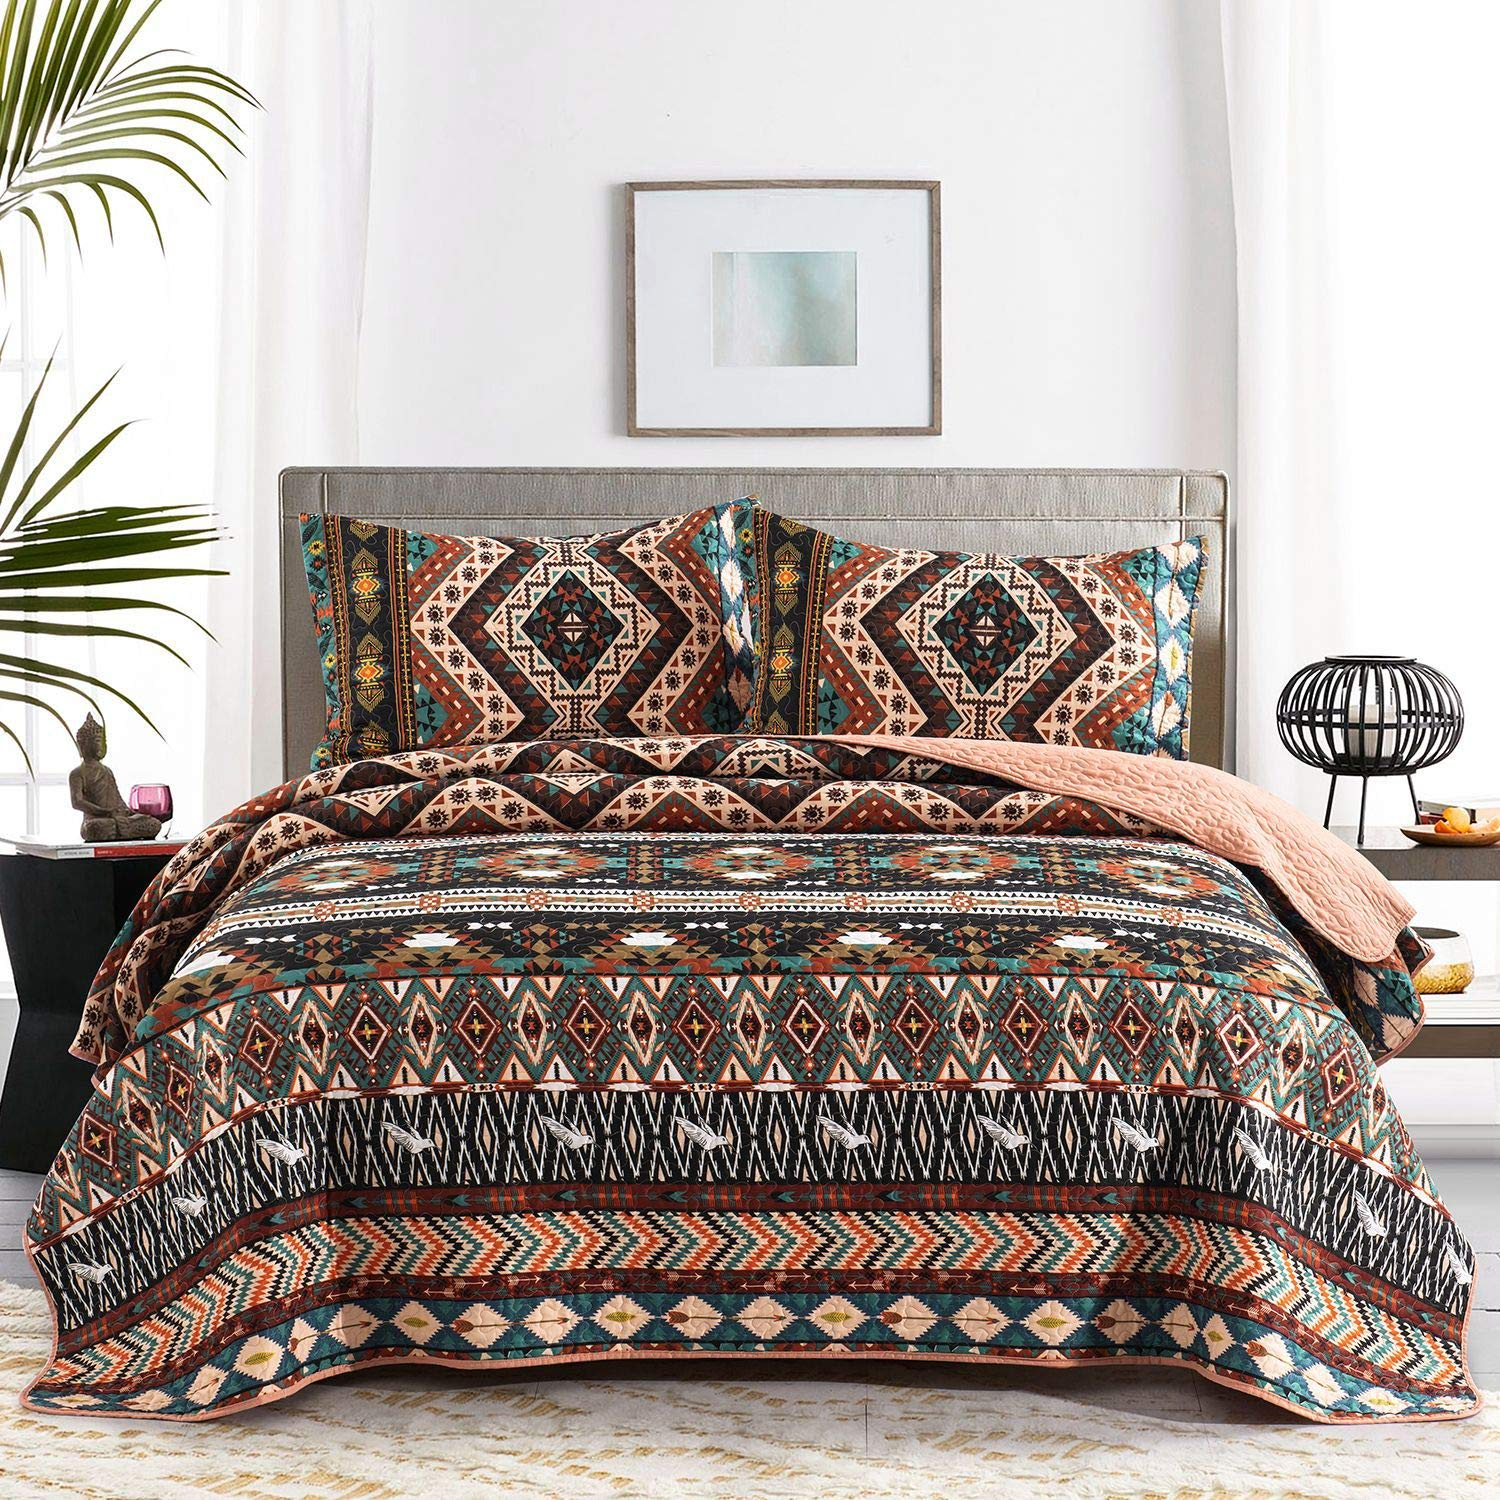 "HONOVA Boho Quilt Set, Southwestern Design Quilted Bedspreads Queen Size 90""x96"" with Birds Pattern Print, Soft Microfiber Lightweight Coverlet with 2 Pillow Shams for All-Season"